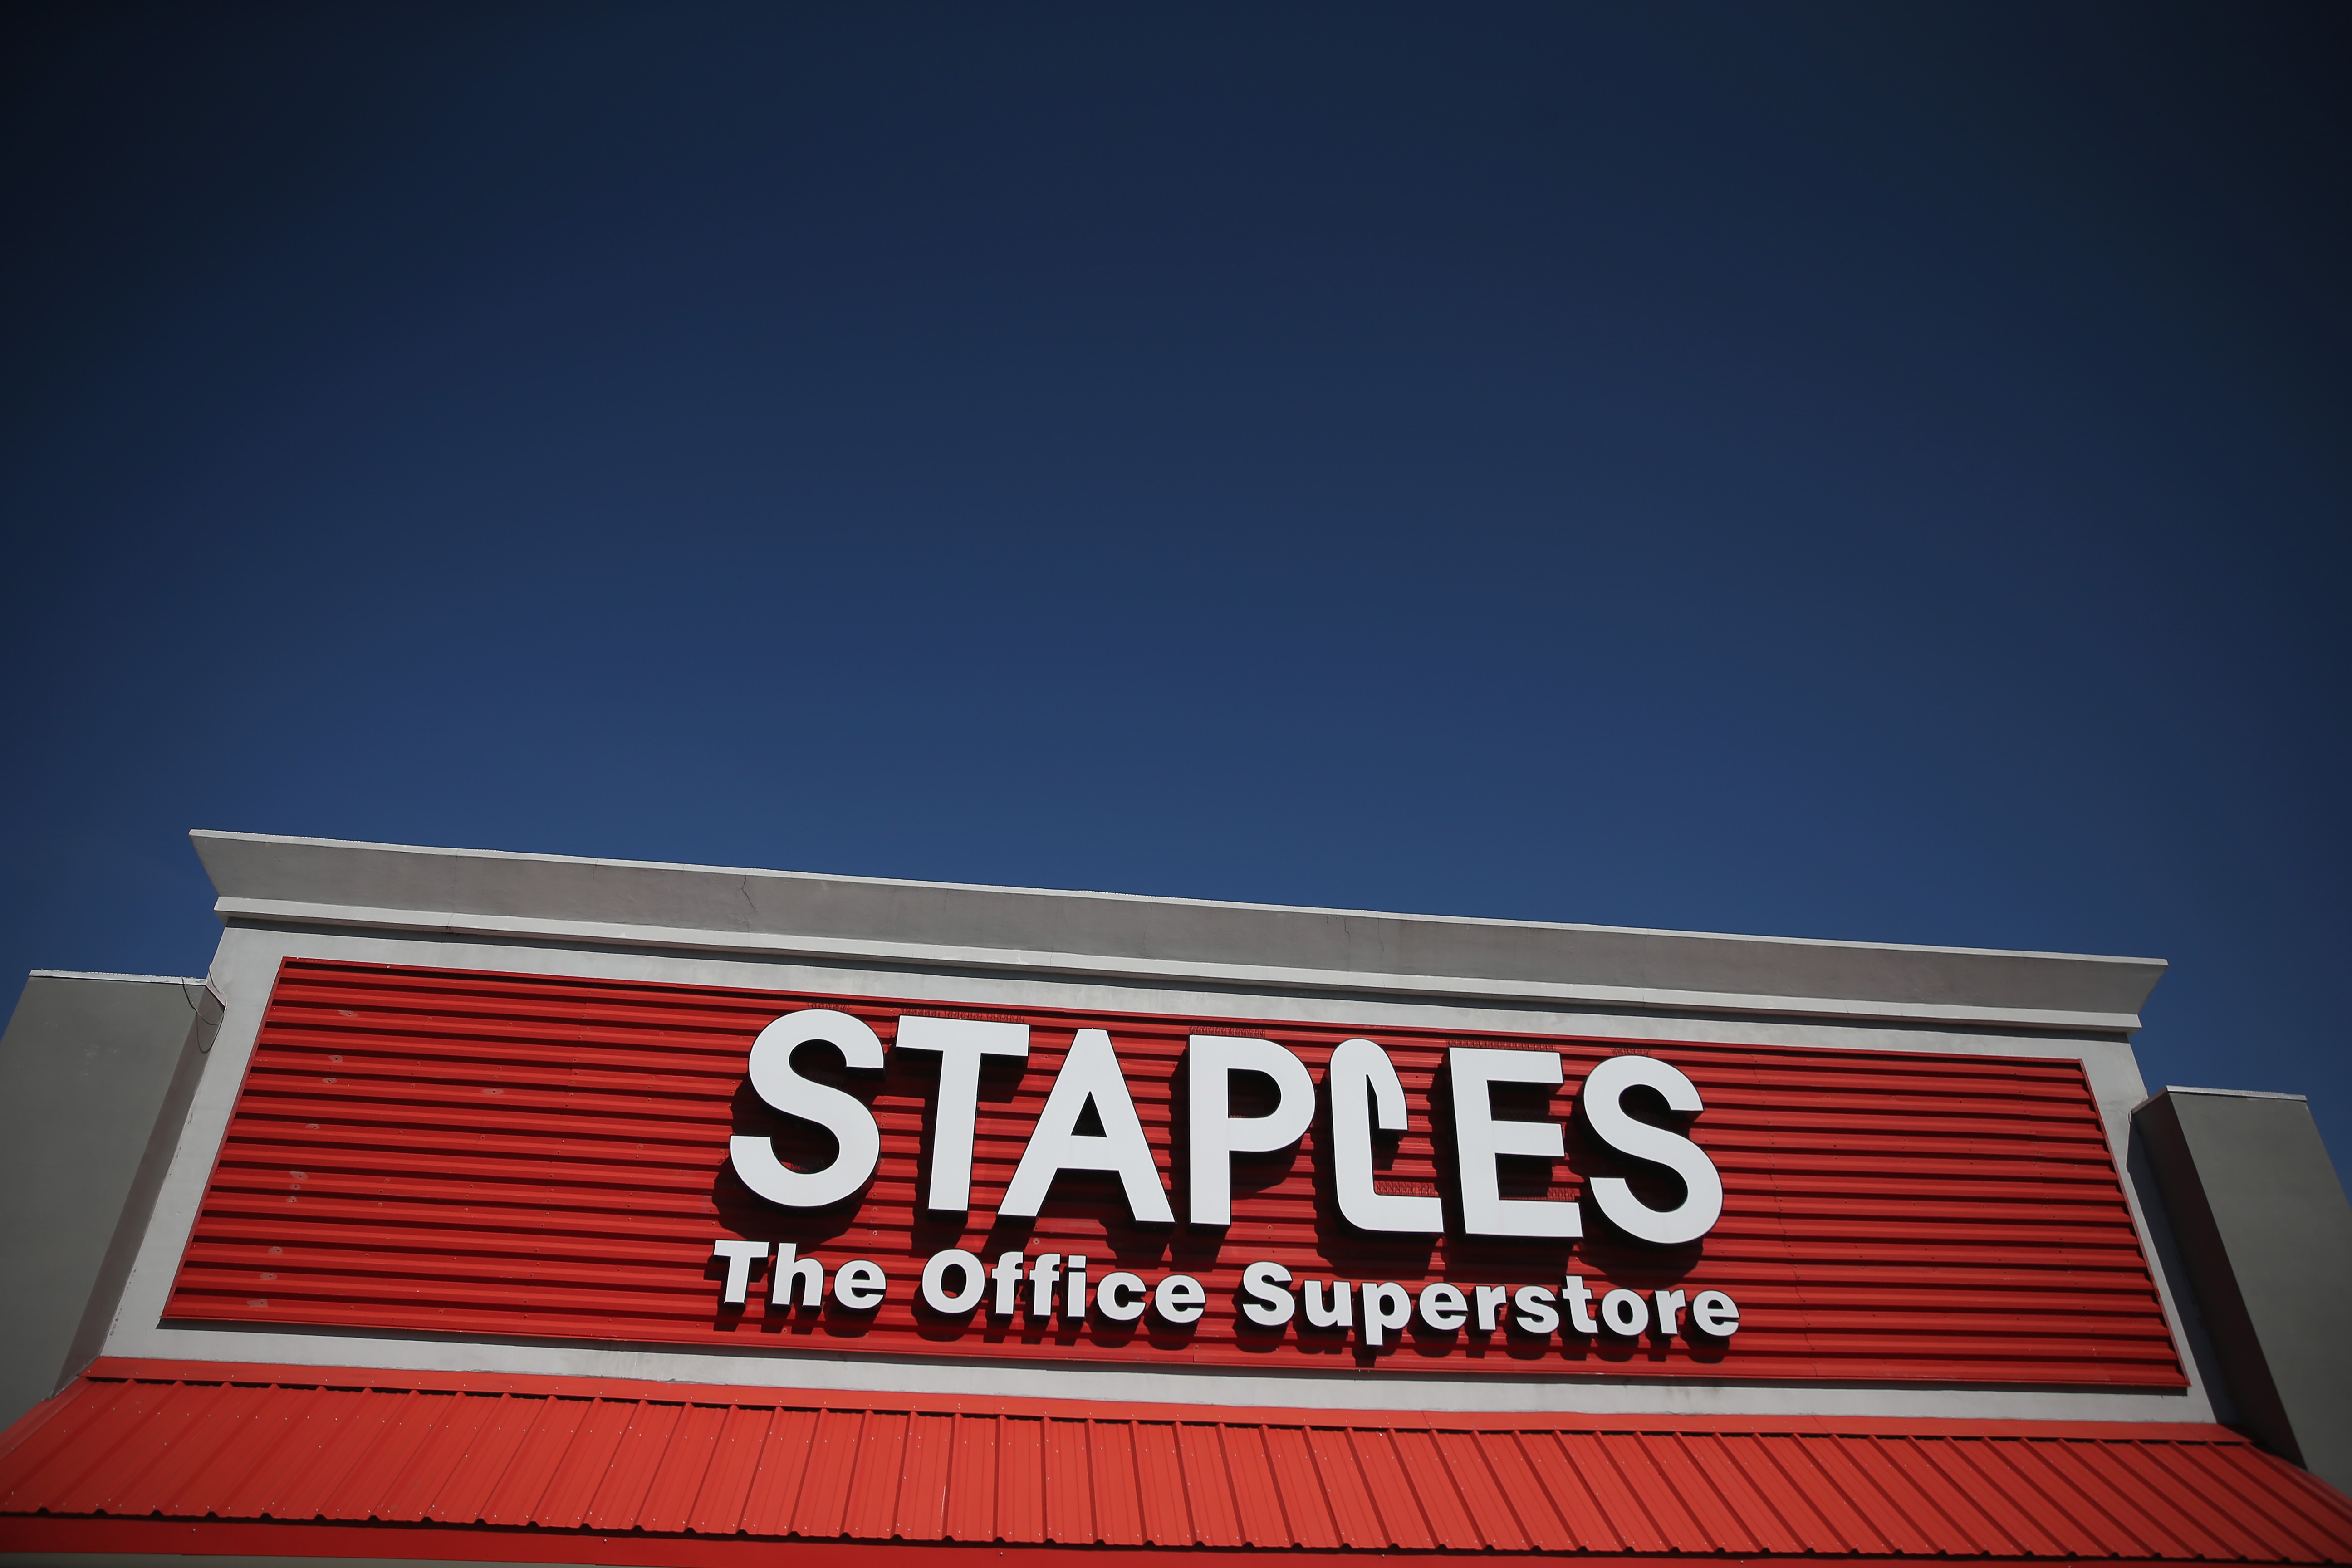 The sign logo for a Staples store is seen on February 3, 2015 in Miami, Florida.